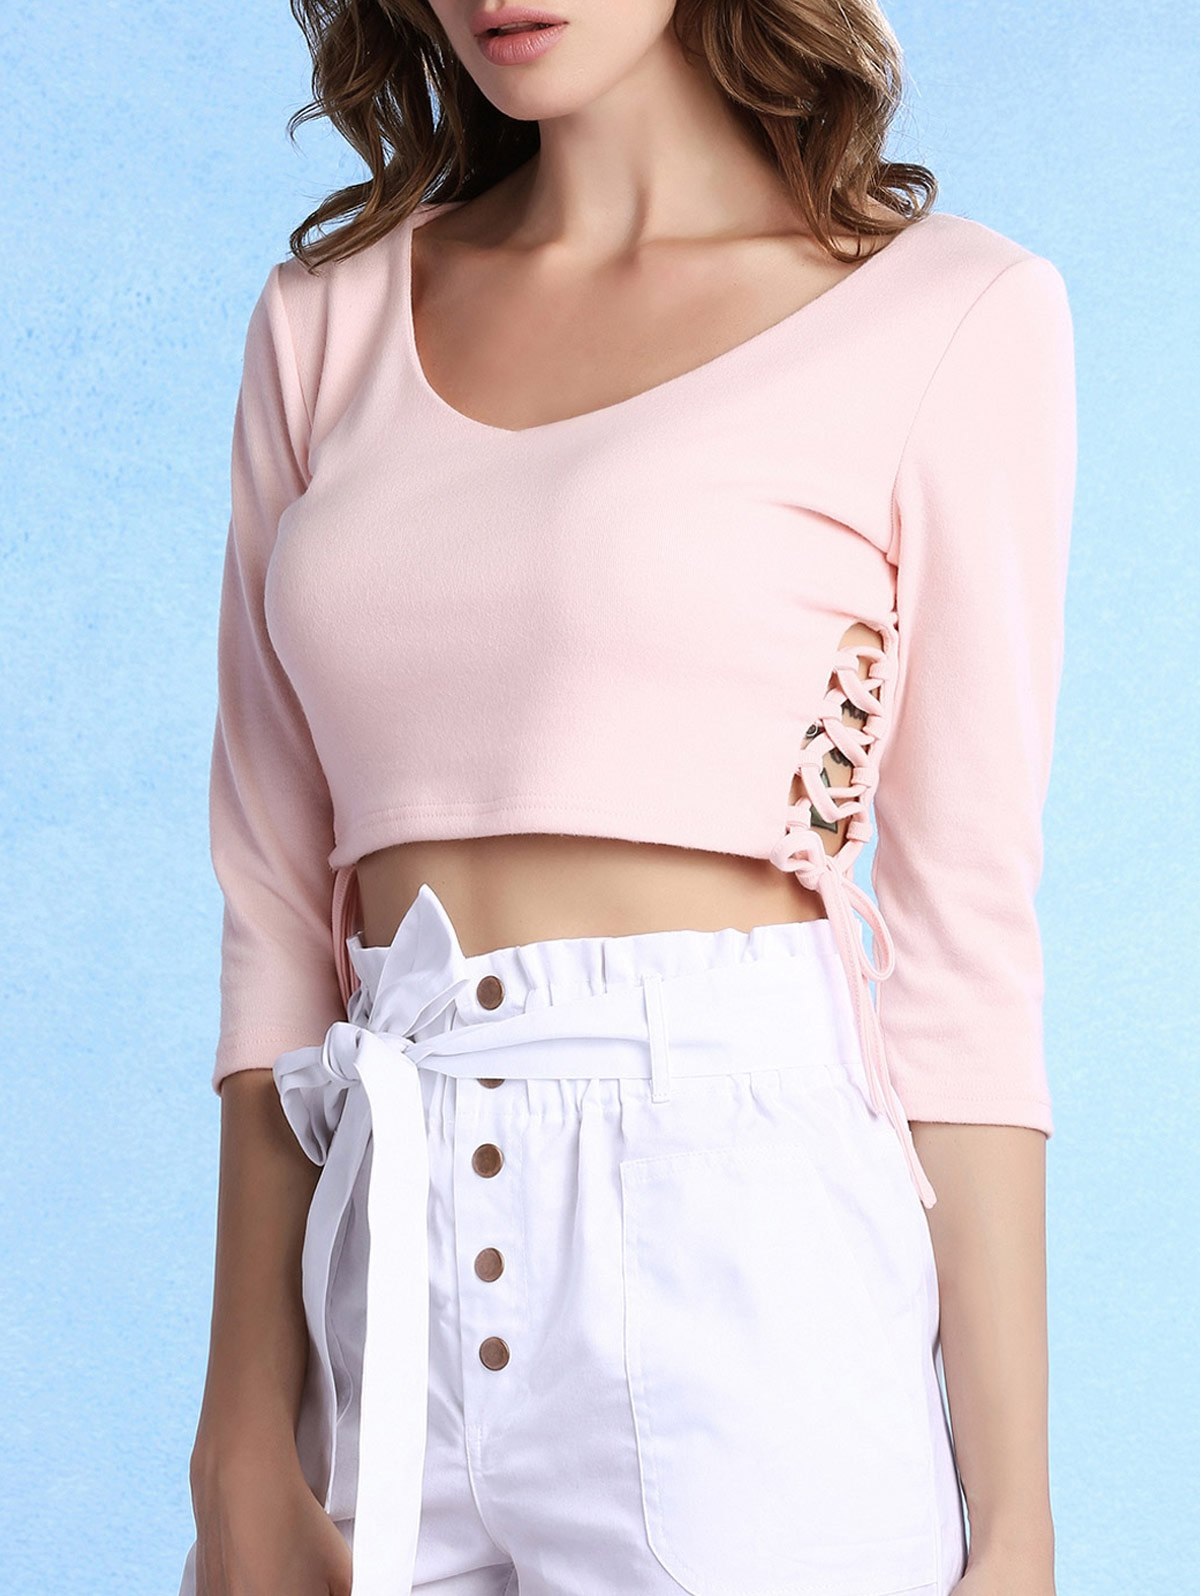 Scoop Neck 3/4 Sleeve Lace Up Cropped T-Shirt